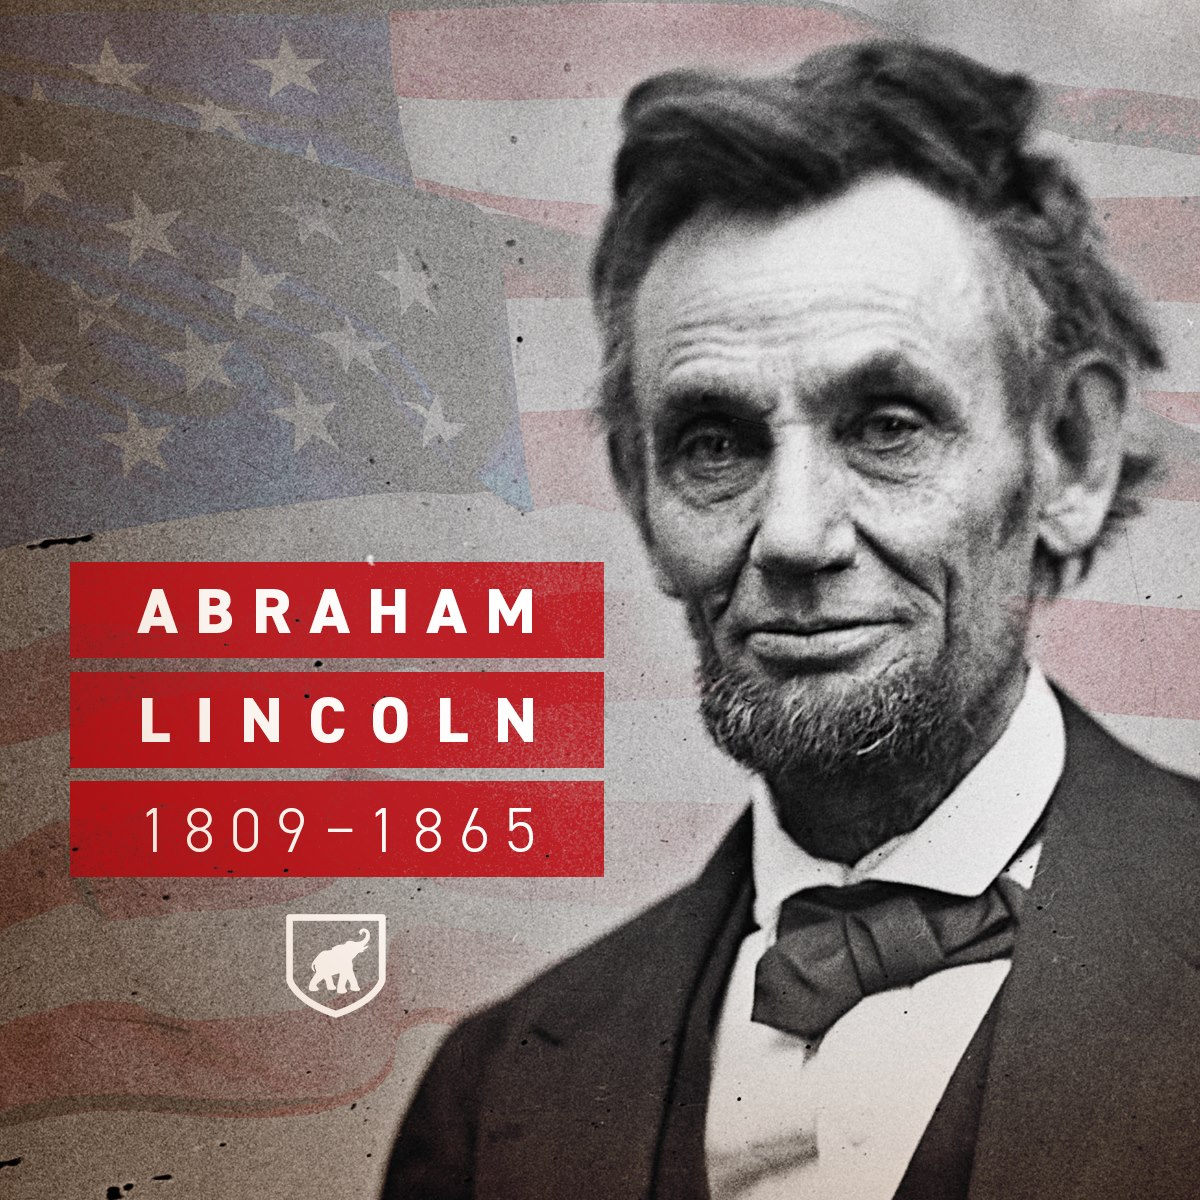 211 years ago today, Abraham Lincoln was born. Happy birthday to our first Republican President!